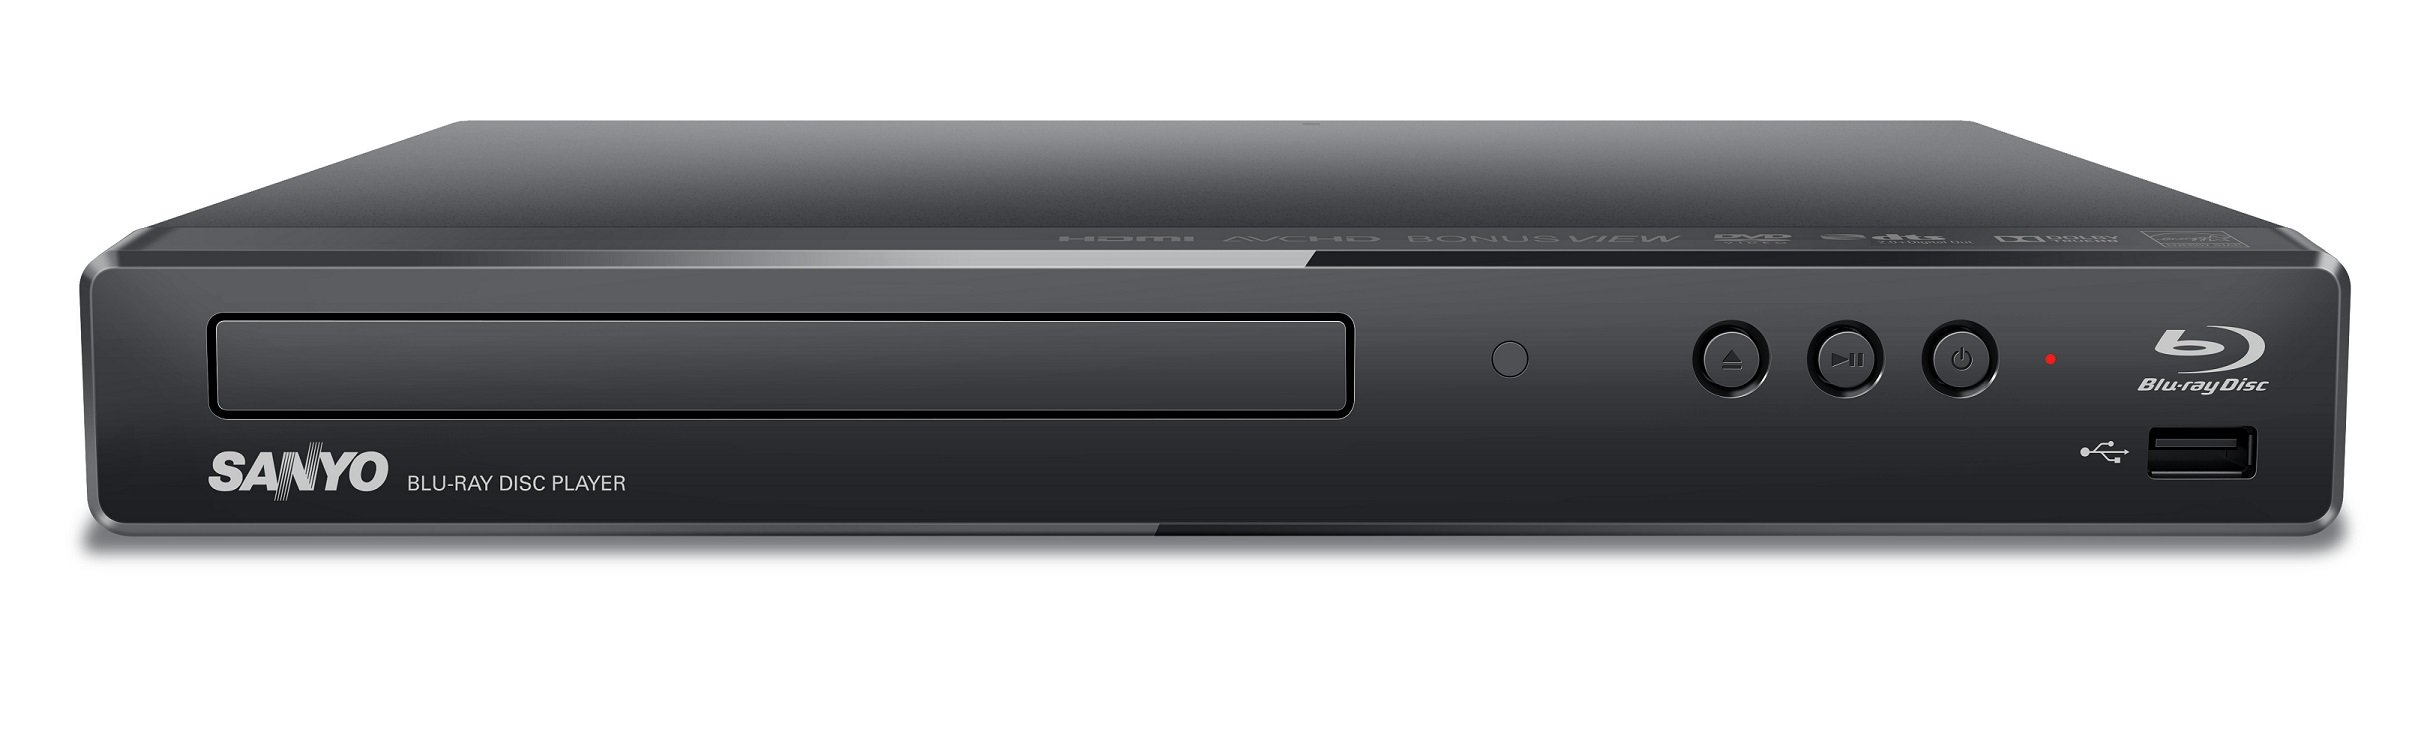 Sanyo FWBP706F Blu-ray Disc & DVD Player with Built-in WiFi by Sanyo